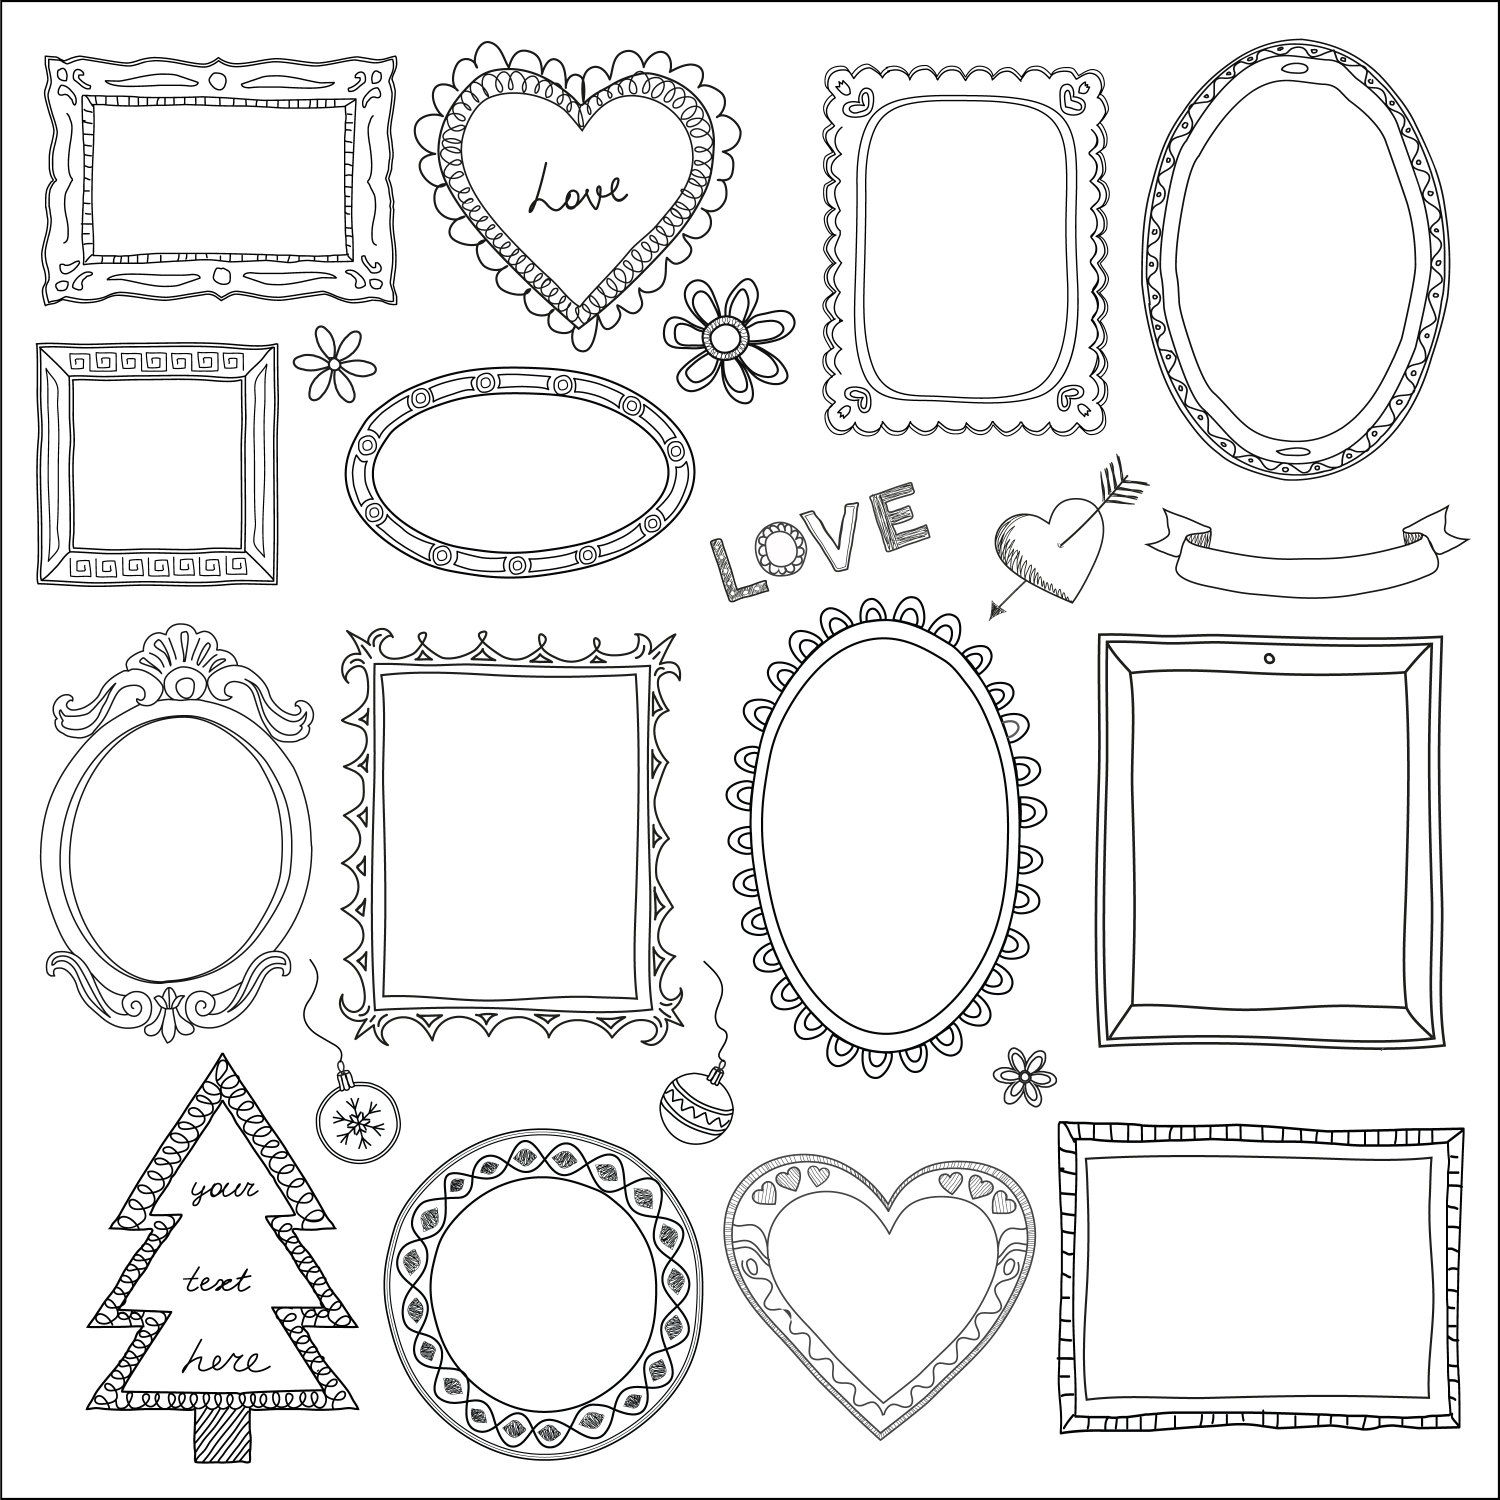 Drawn frame Designs Google Google Search Search